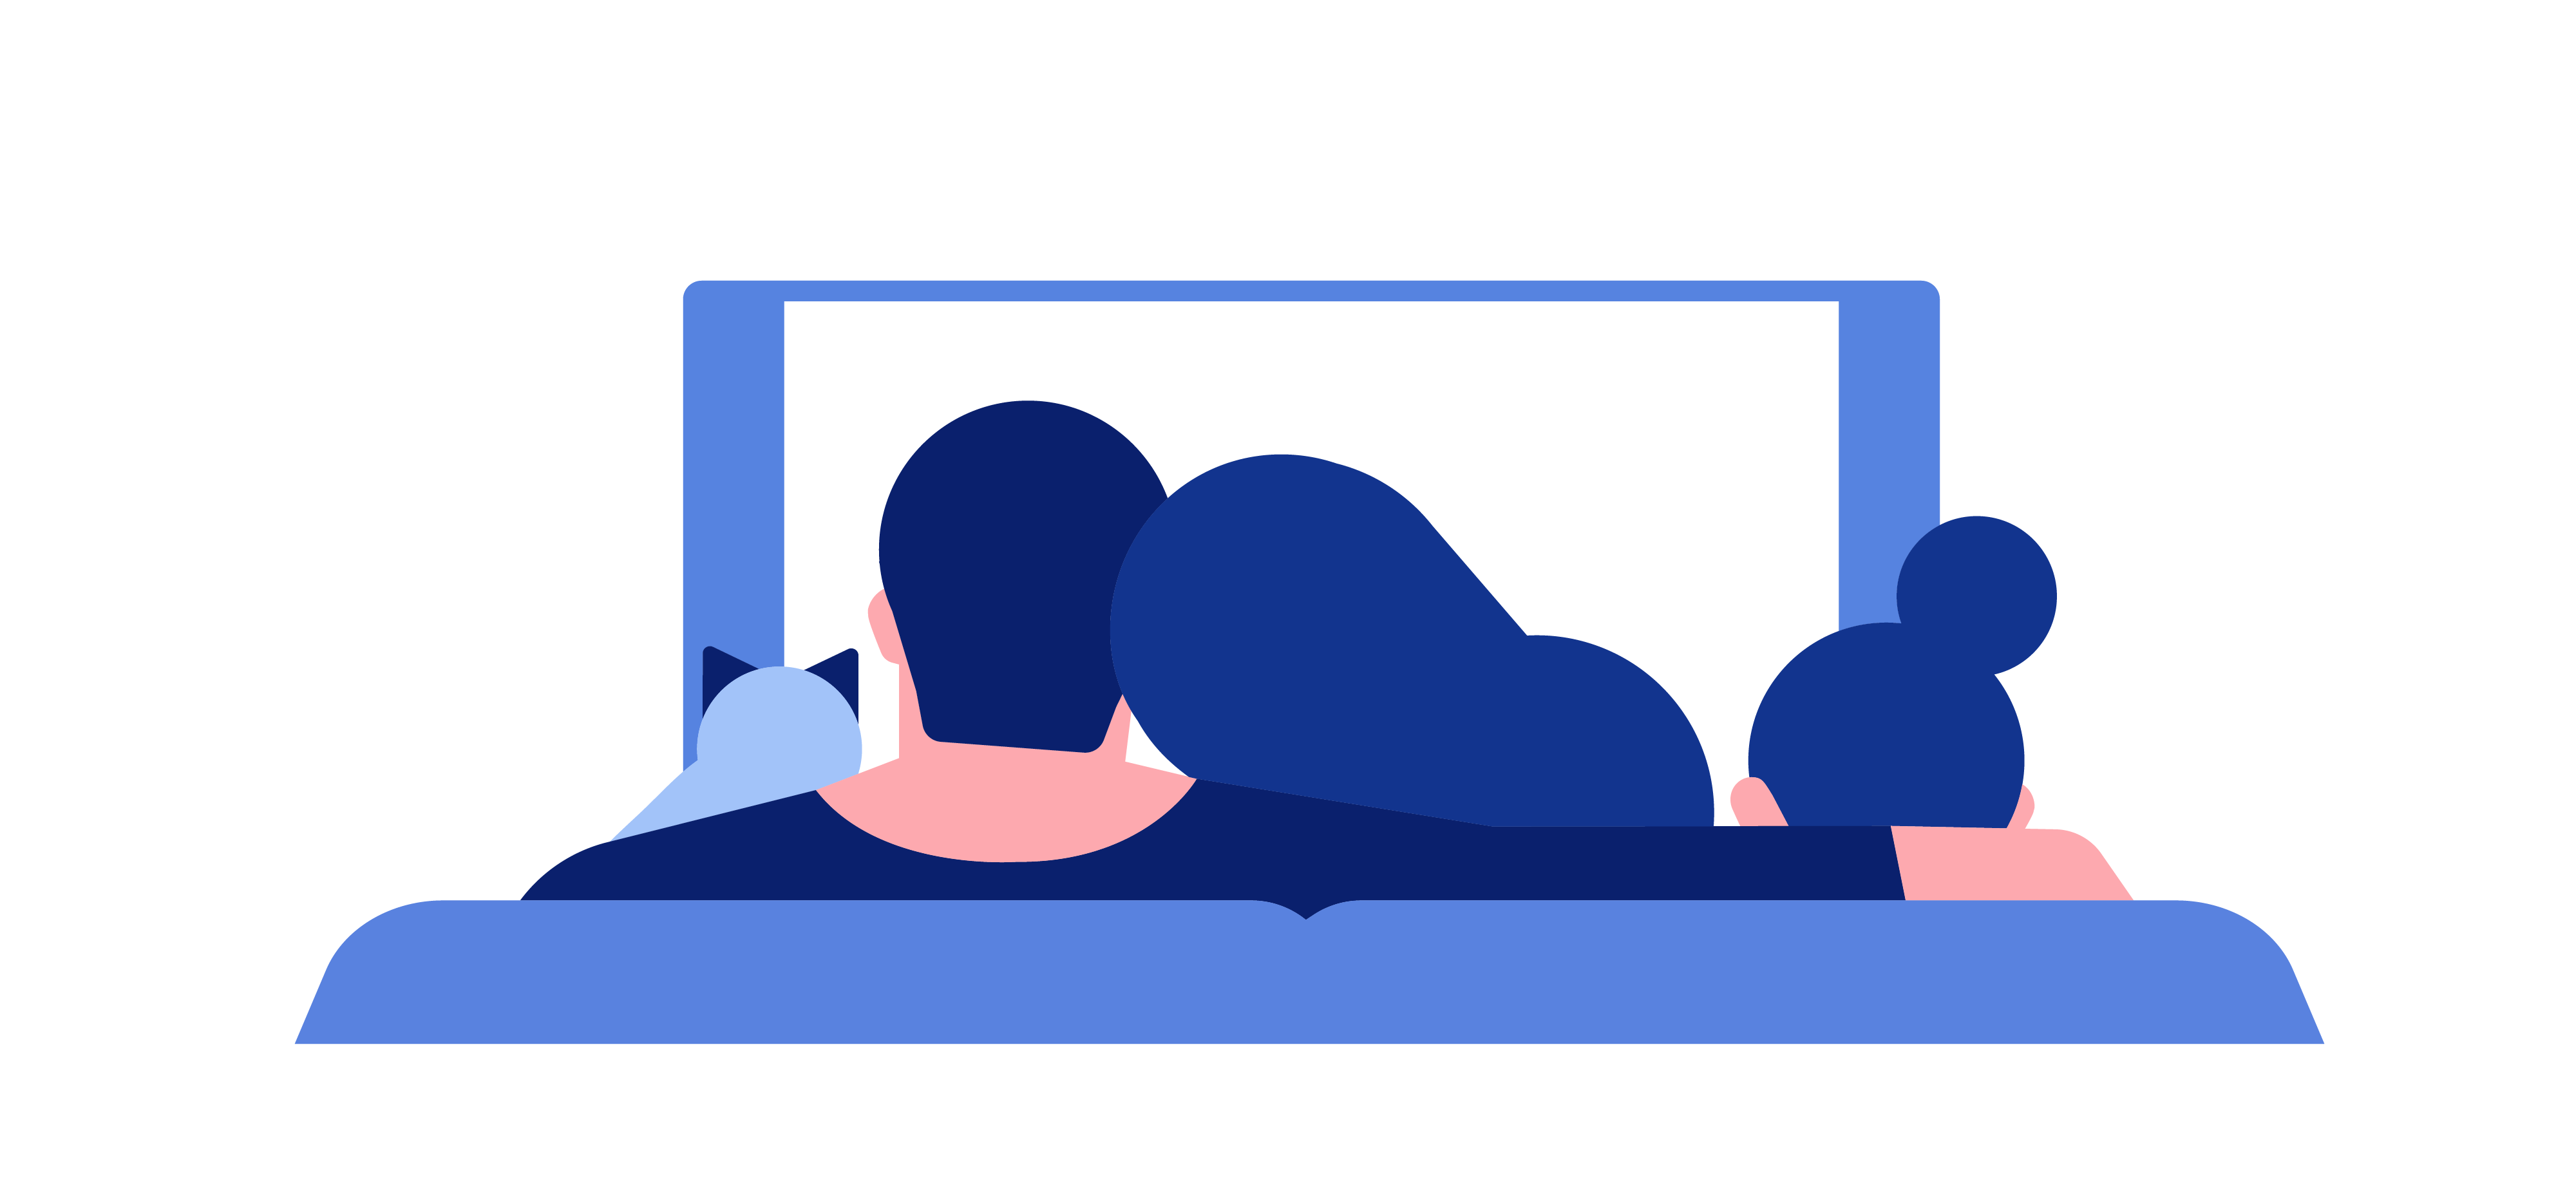 Illustration of three people sitting on a couch watching TV together